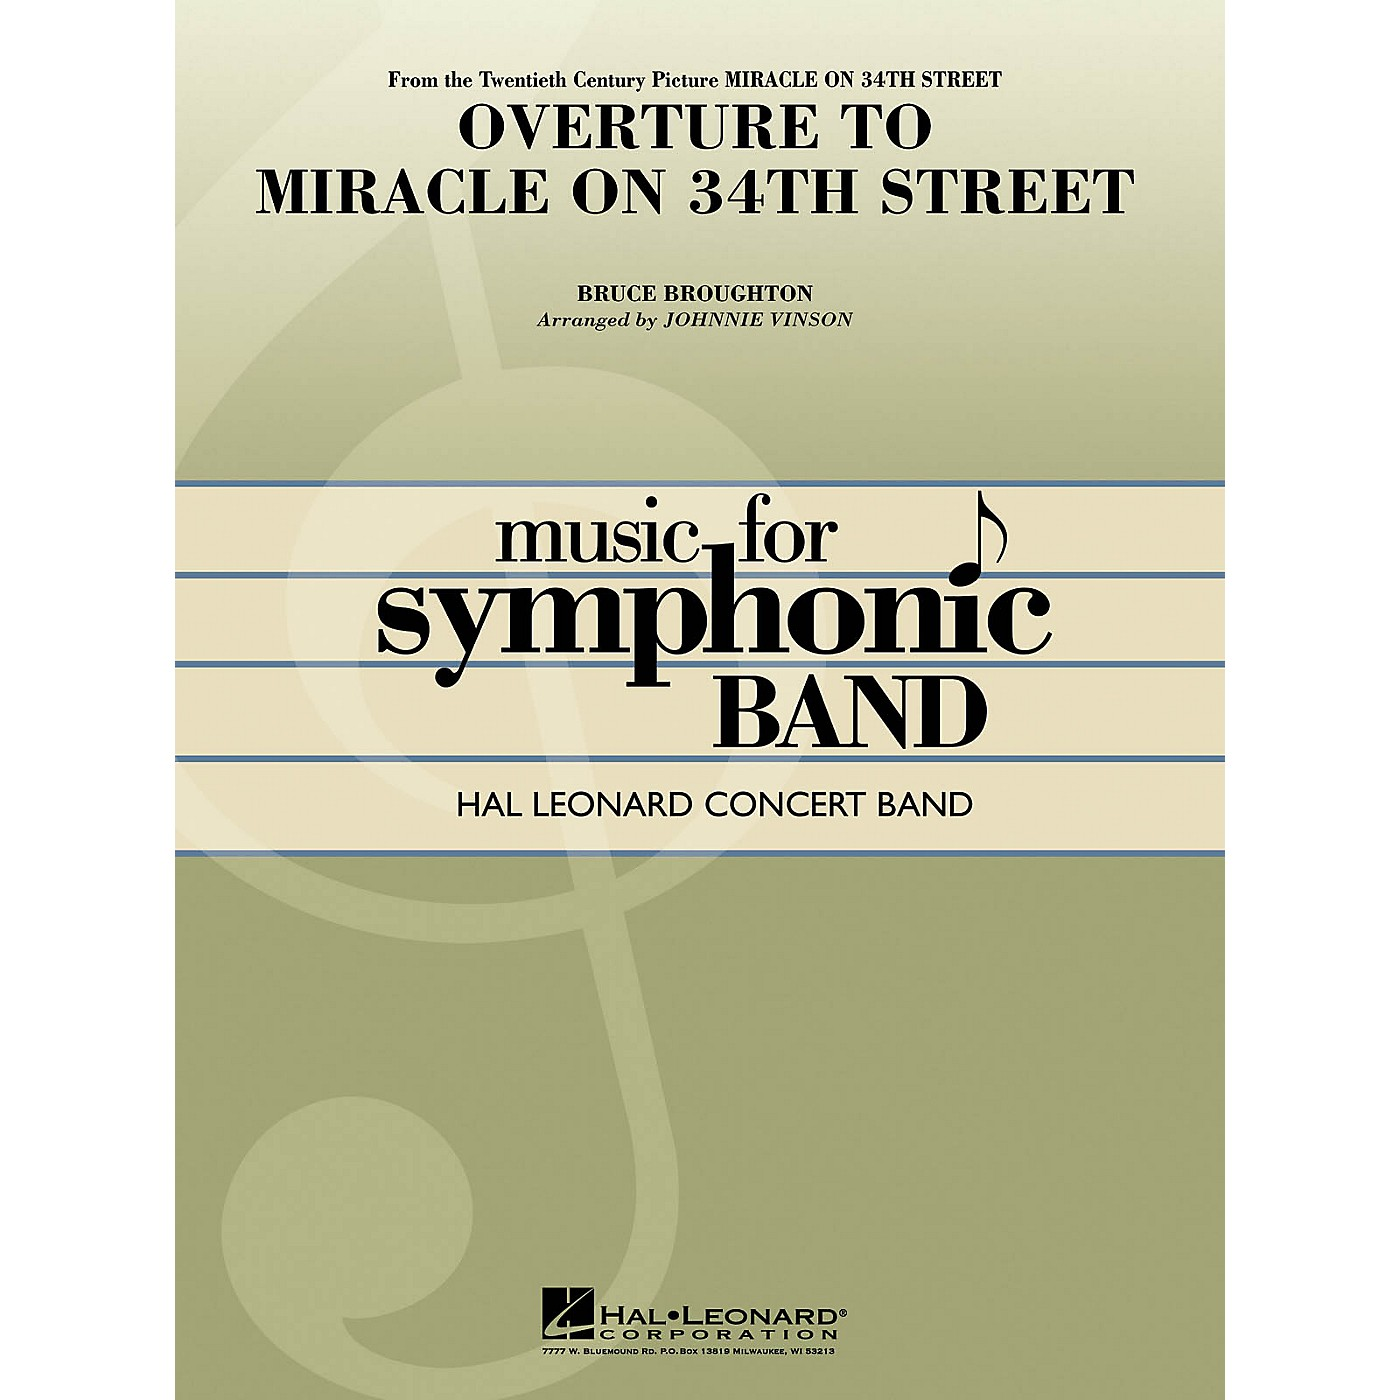 Hal Leonard Overture to Miracle on 34th Street Concert Band Level 4 Arranged by Keith Christopher thumbnail